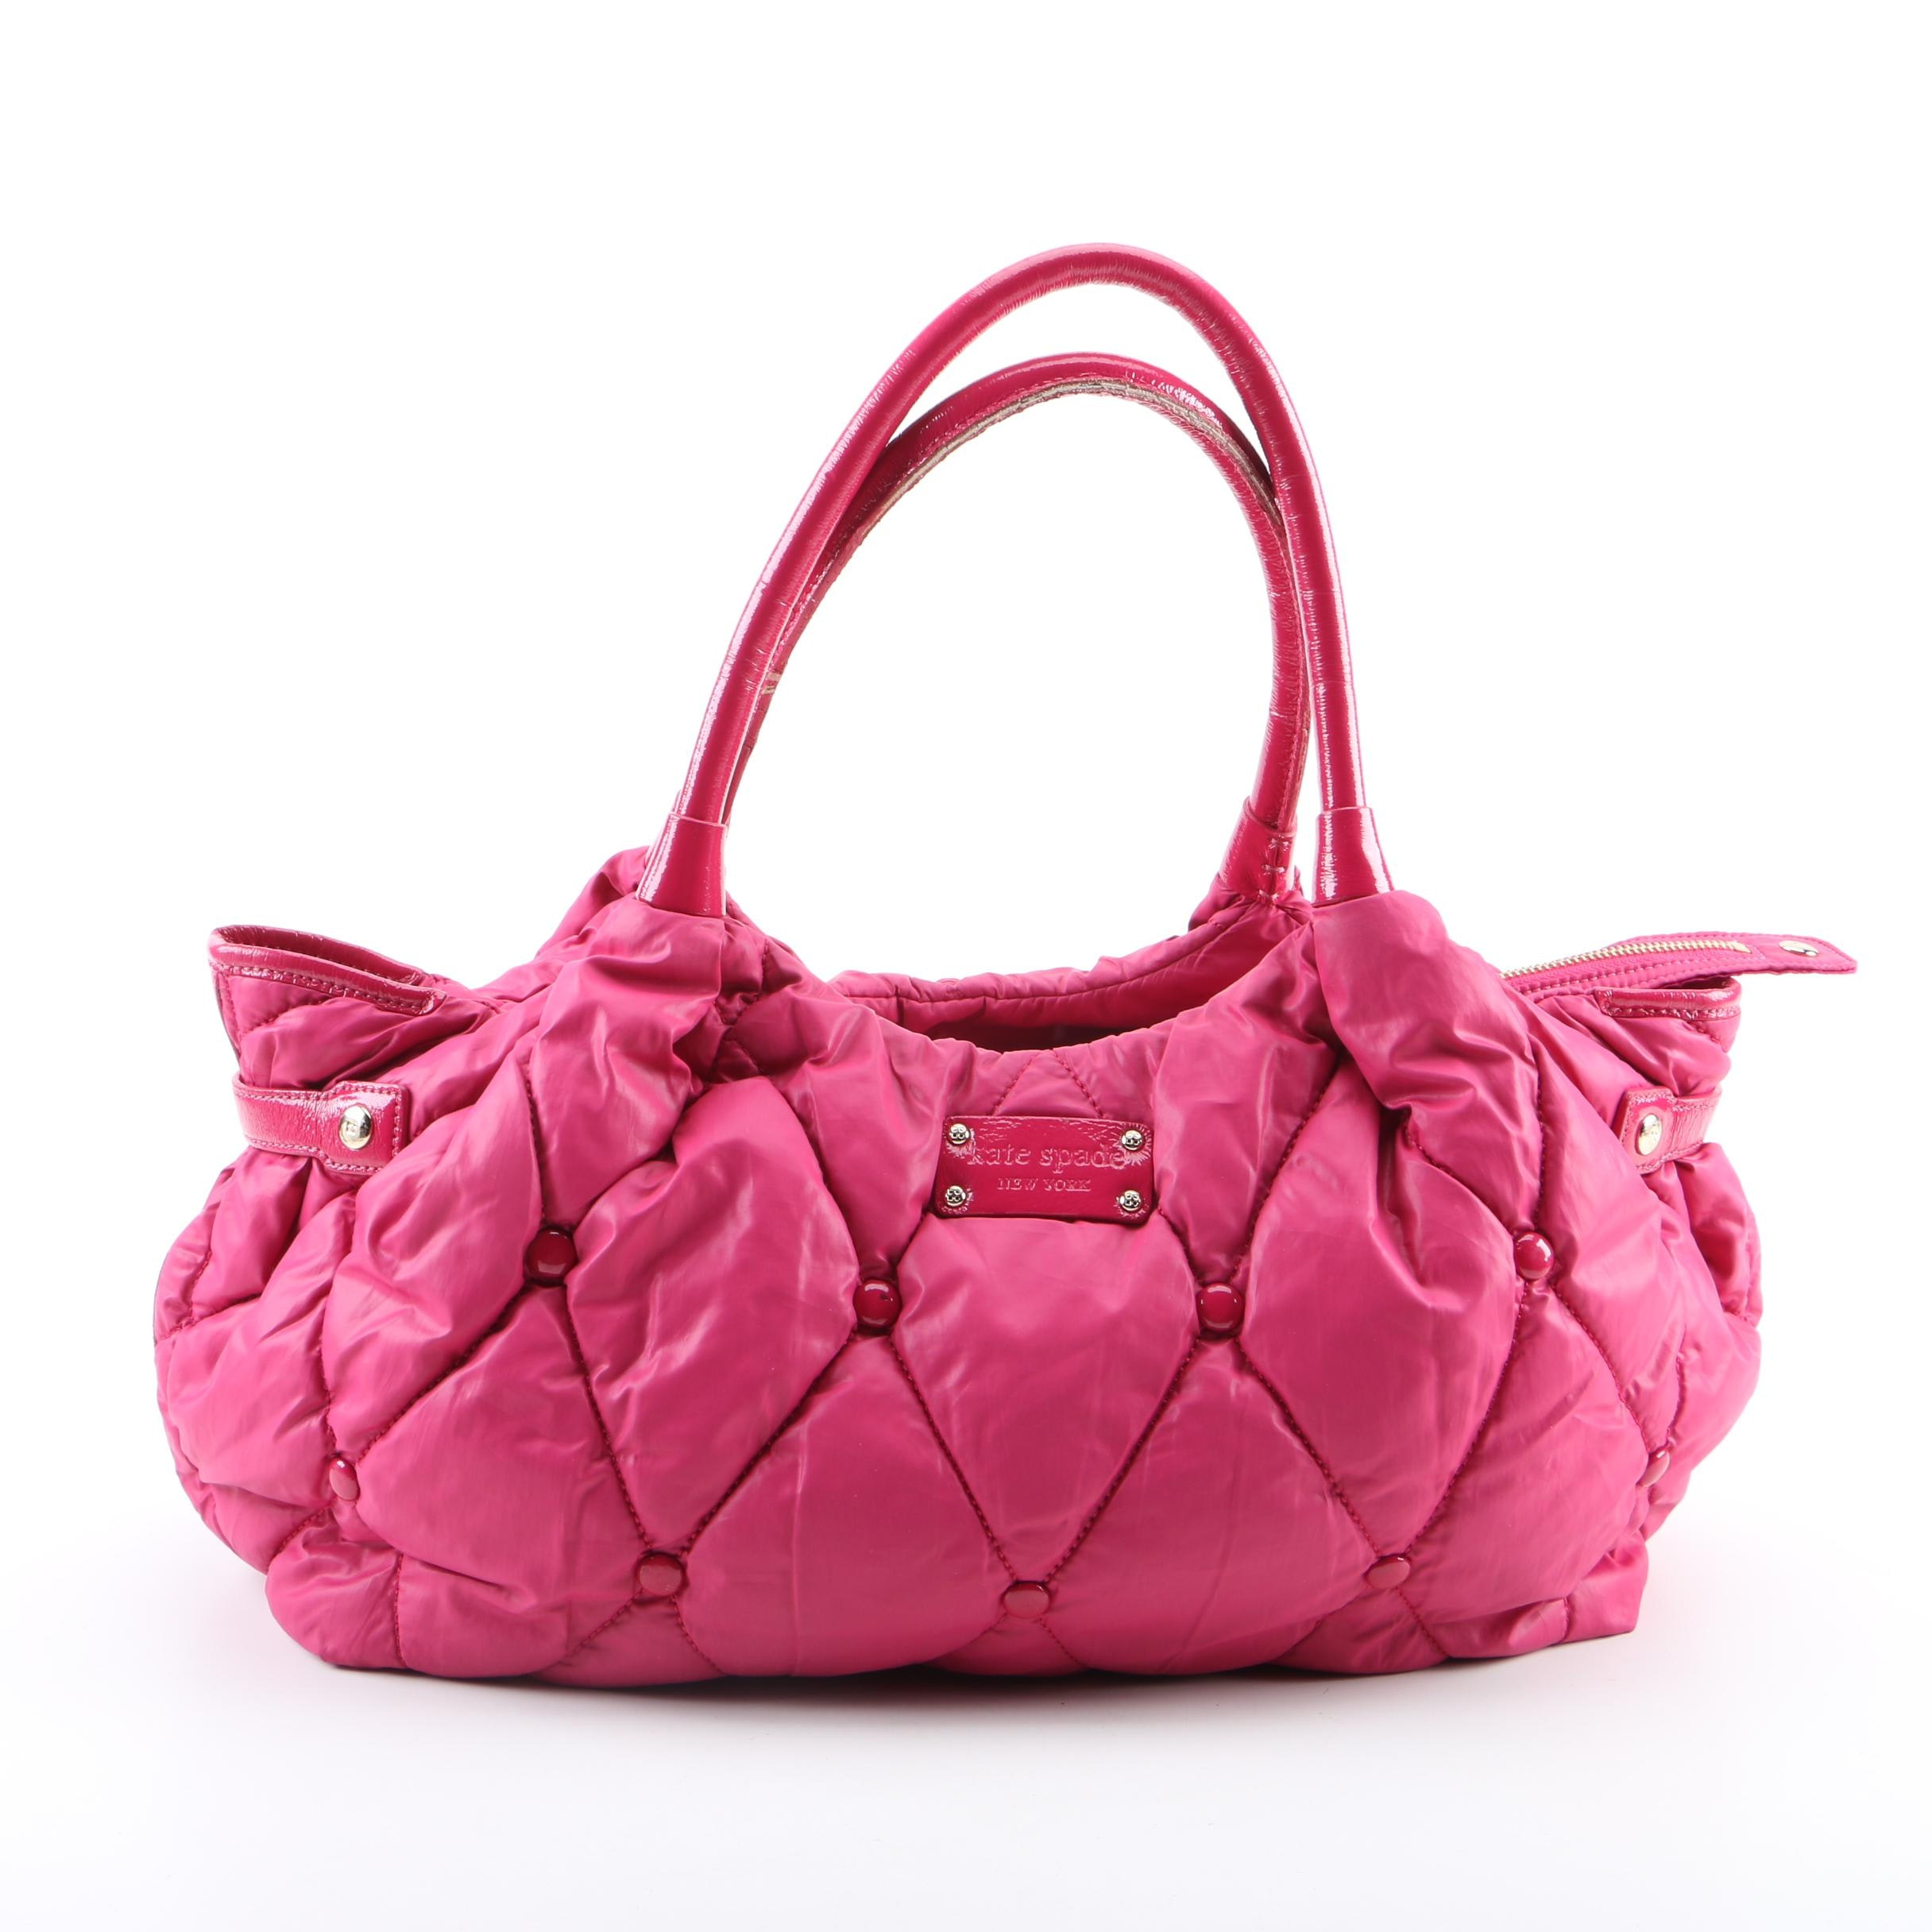 Kate Spade New York Pink Quilted Nylon and Patent Leather Tote